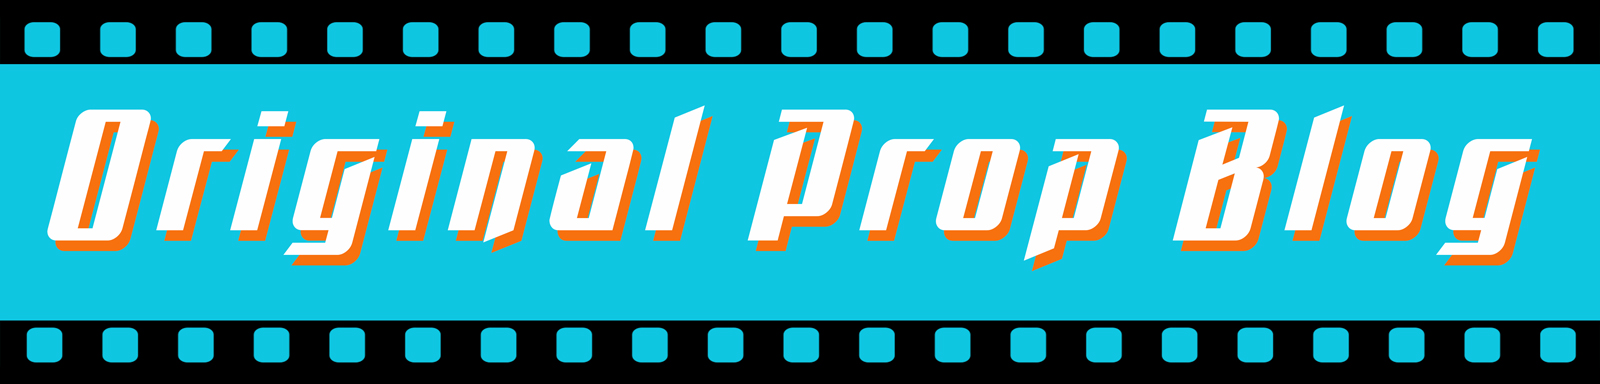 Jason DeBord's Original Prop Blog TV & Movie Prop, Costume, Memorablia Resource